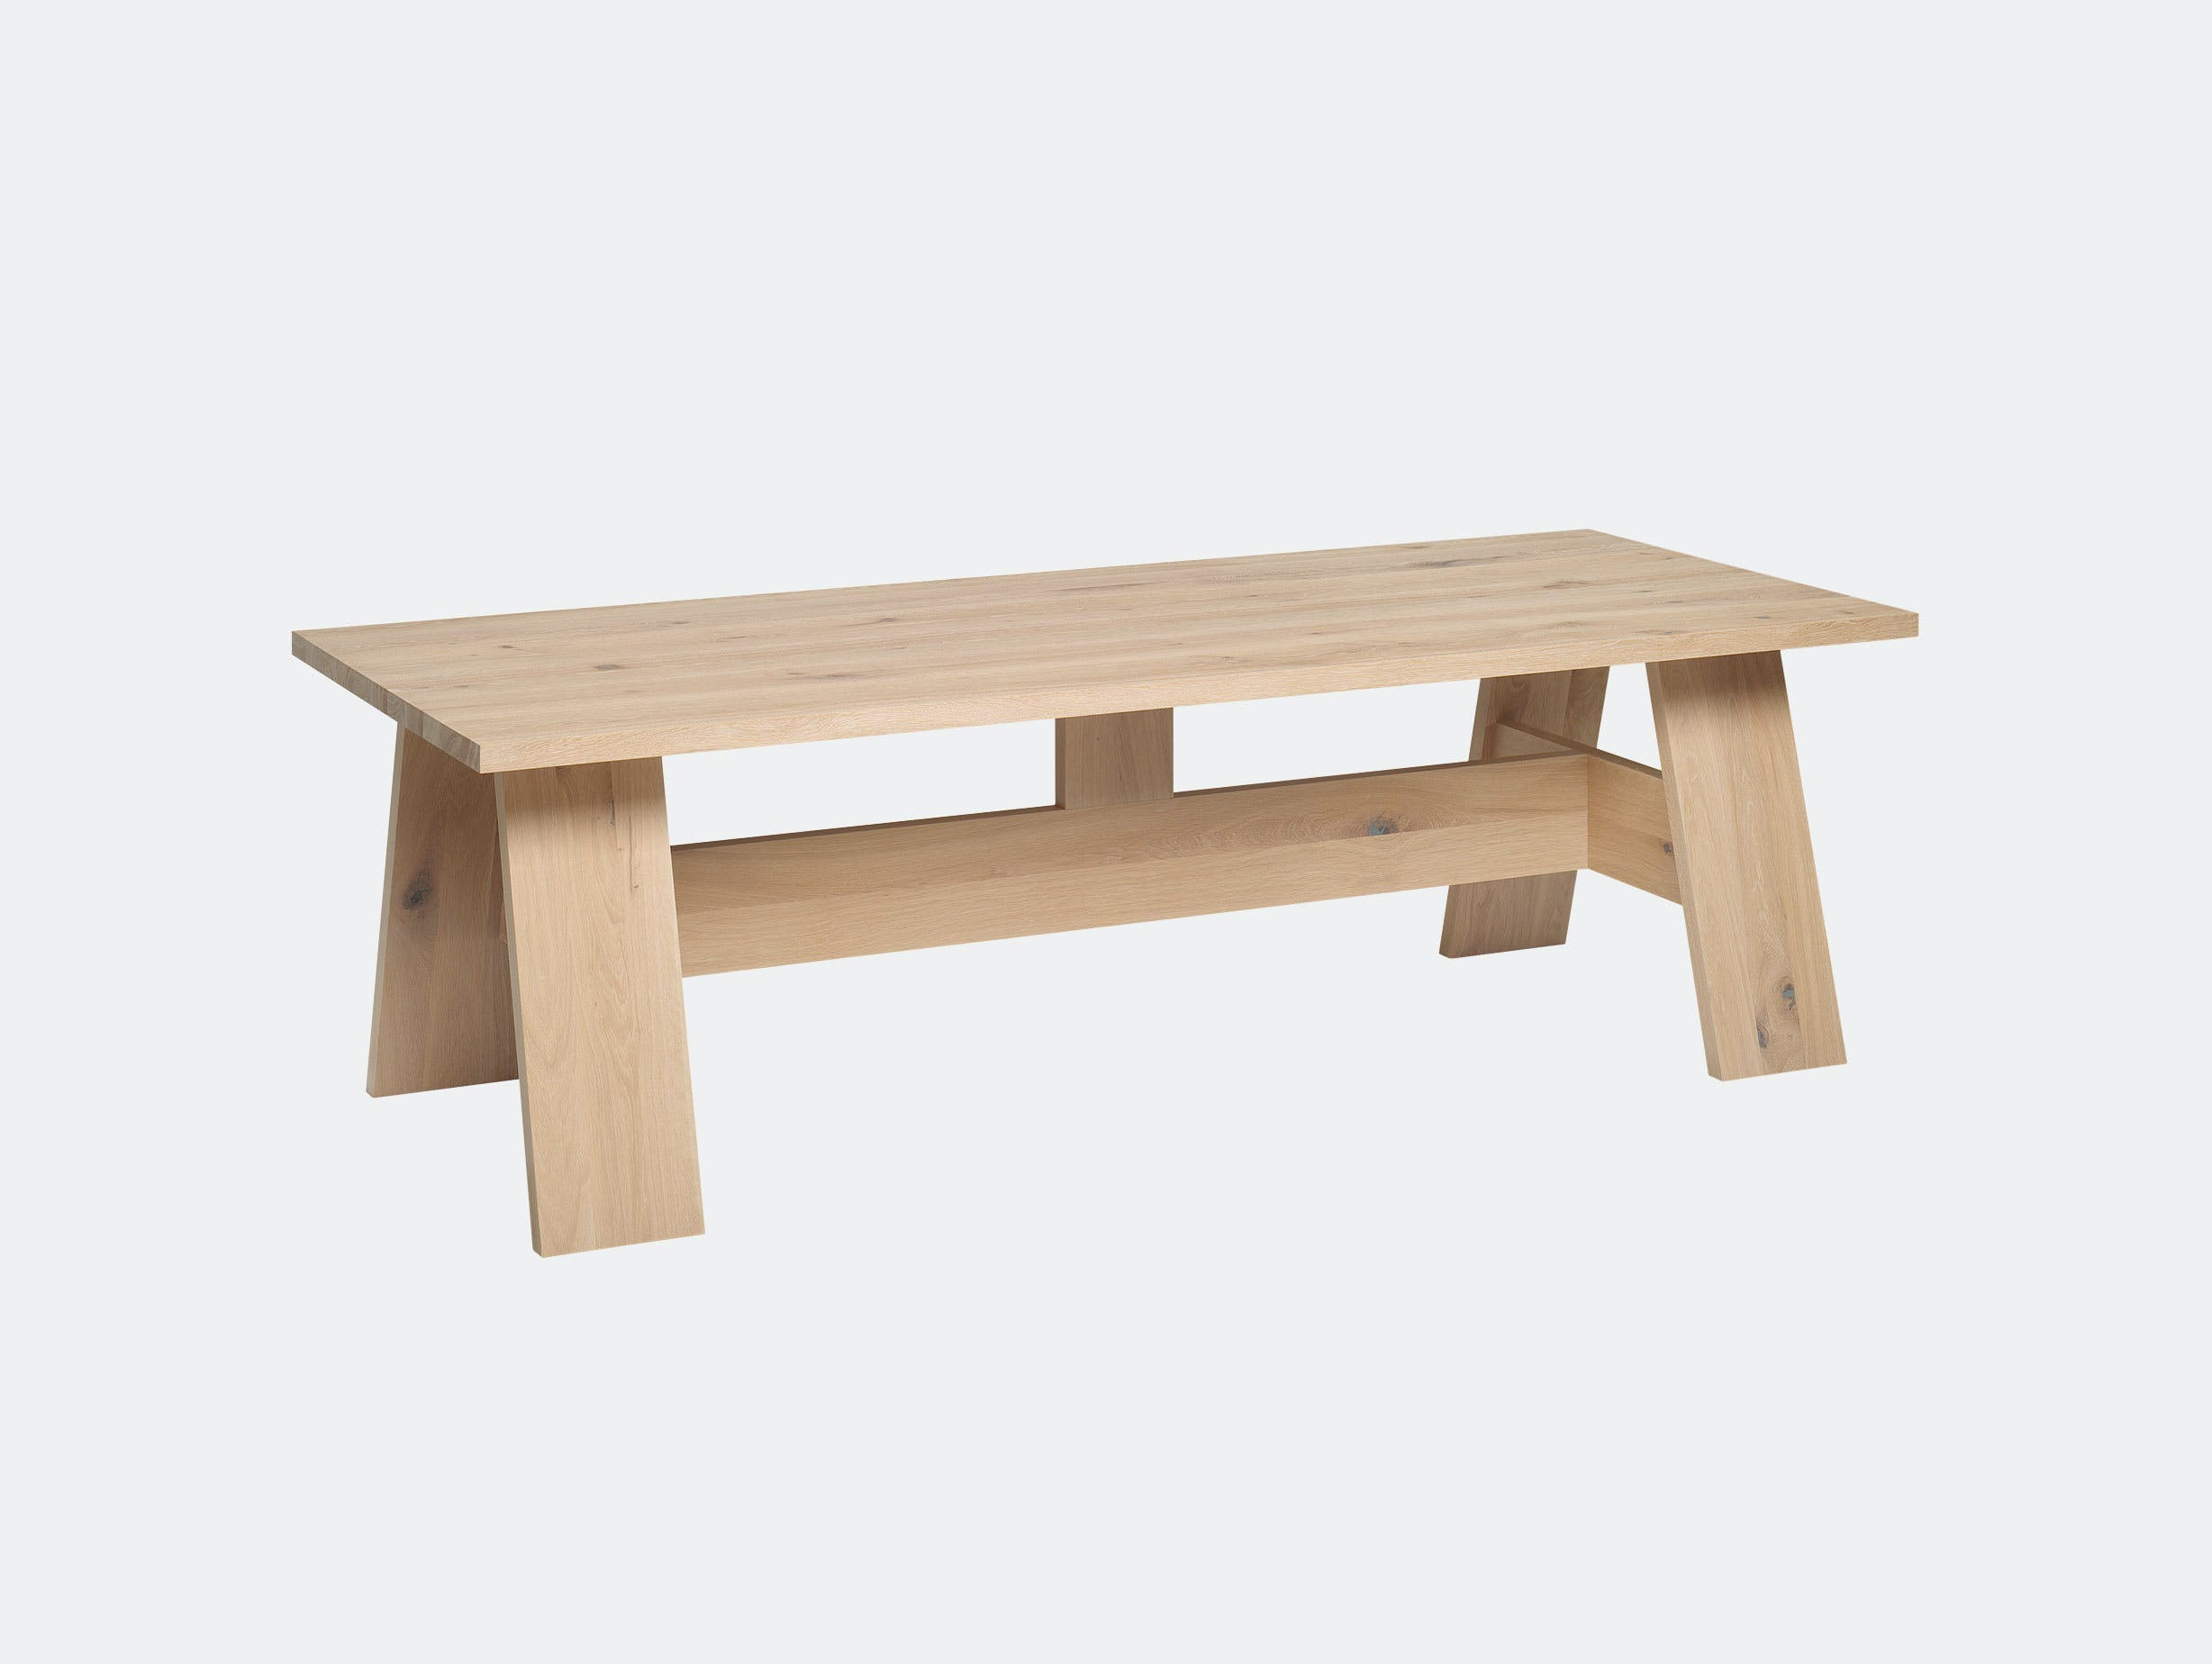 Fayland Table image